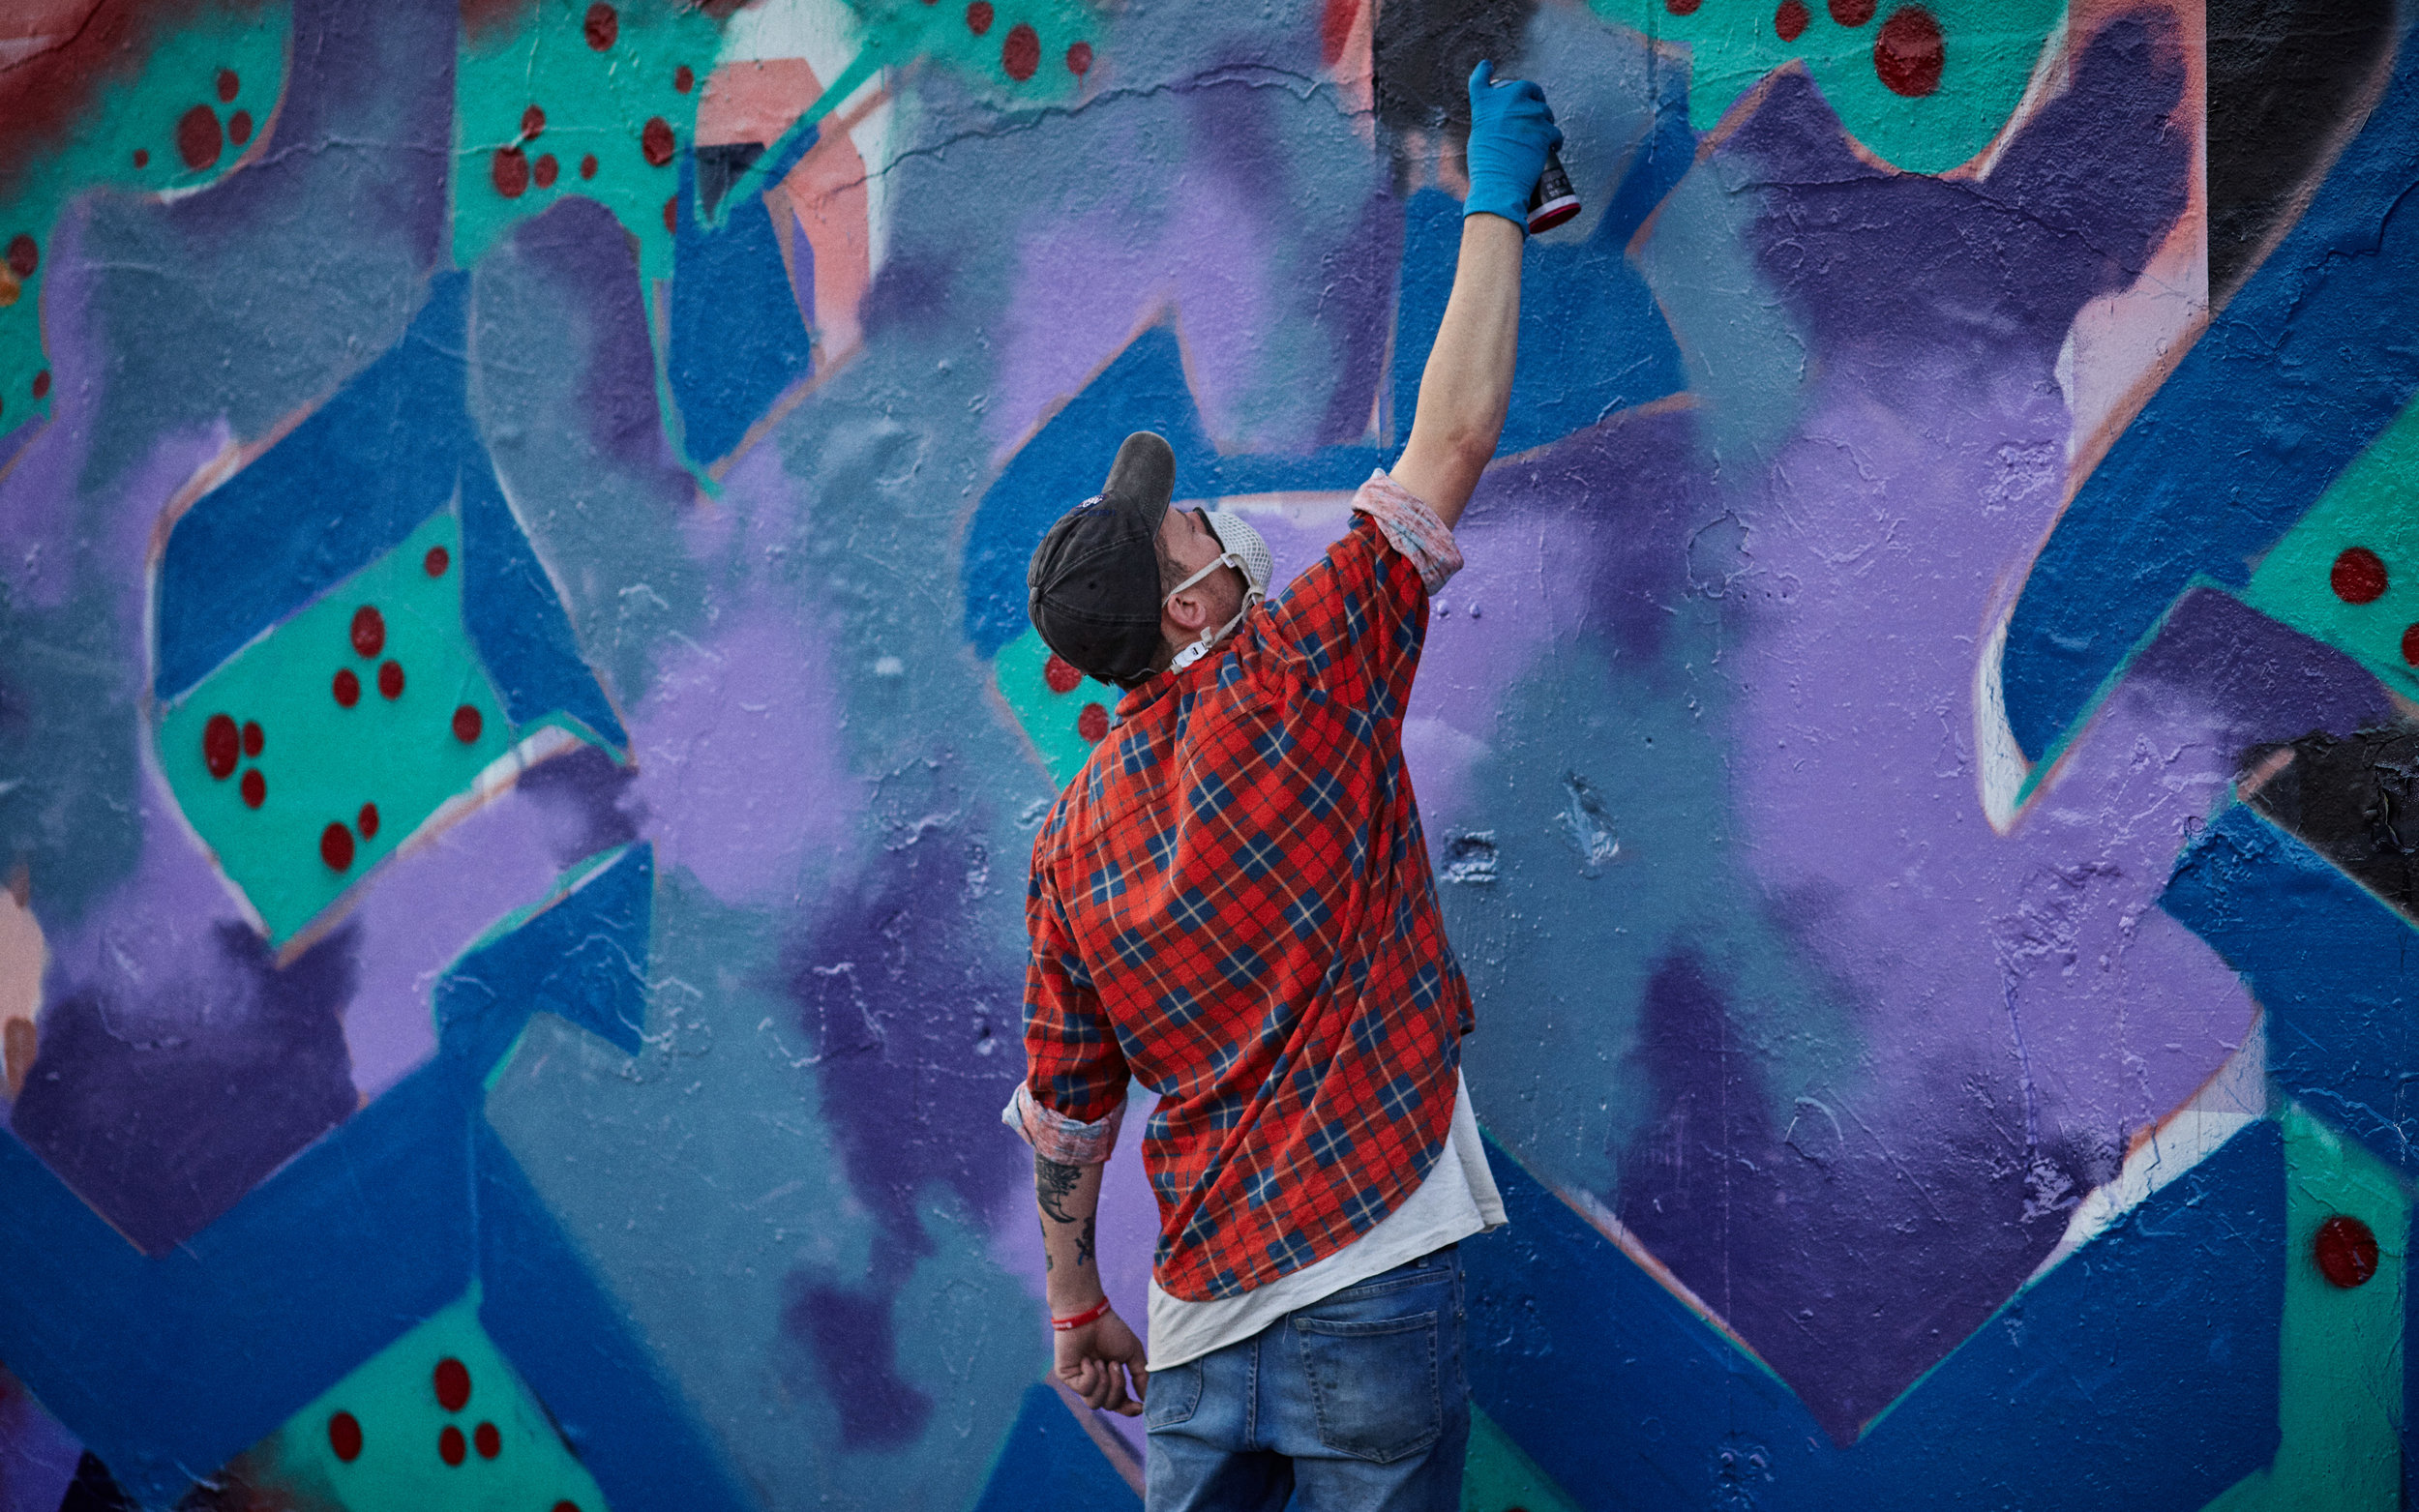 GRAFFITI BATTLES -